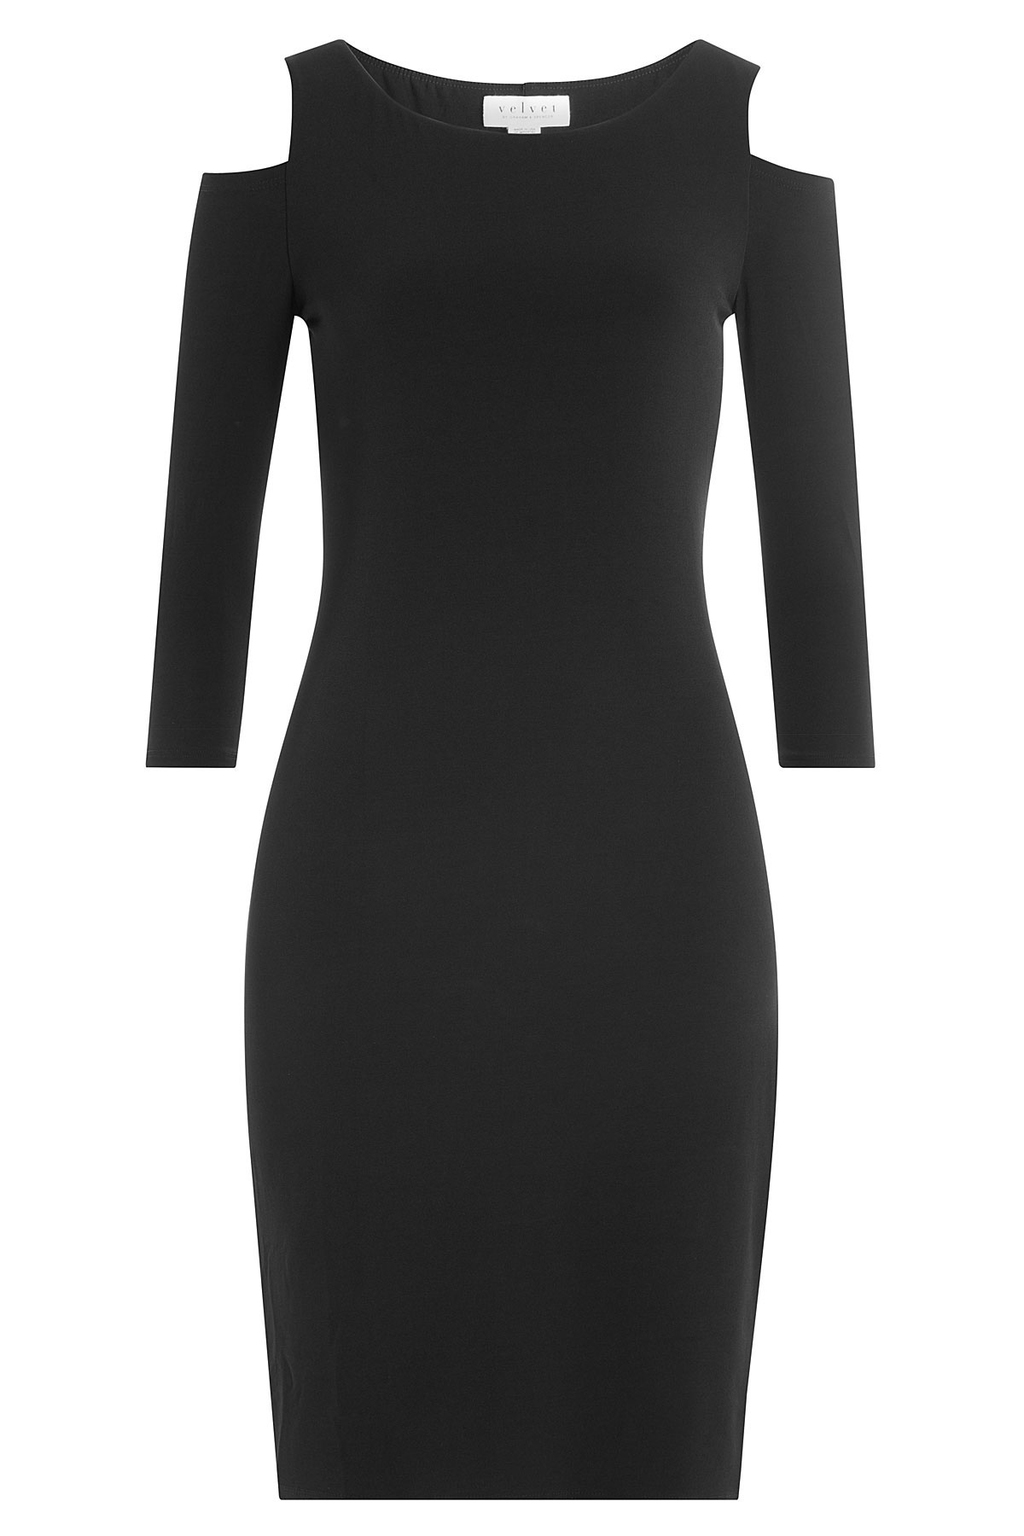 Jersey Dress With Cutout Shoulders - fit: tight; pattern: plain; style: bodycon; predominant colour: black; occasions: evening; length: just above the knee; fibres: polyester/polyamide - stretch; neckline: crew; shoulder detail: cut out shoulder; sleeve length: 3/4 length; sleeve style: standard; texture group: jersey - clingy; pattern type: fabric; season: a/w 2016; wardrobe: event